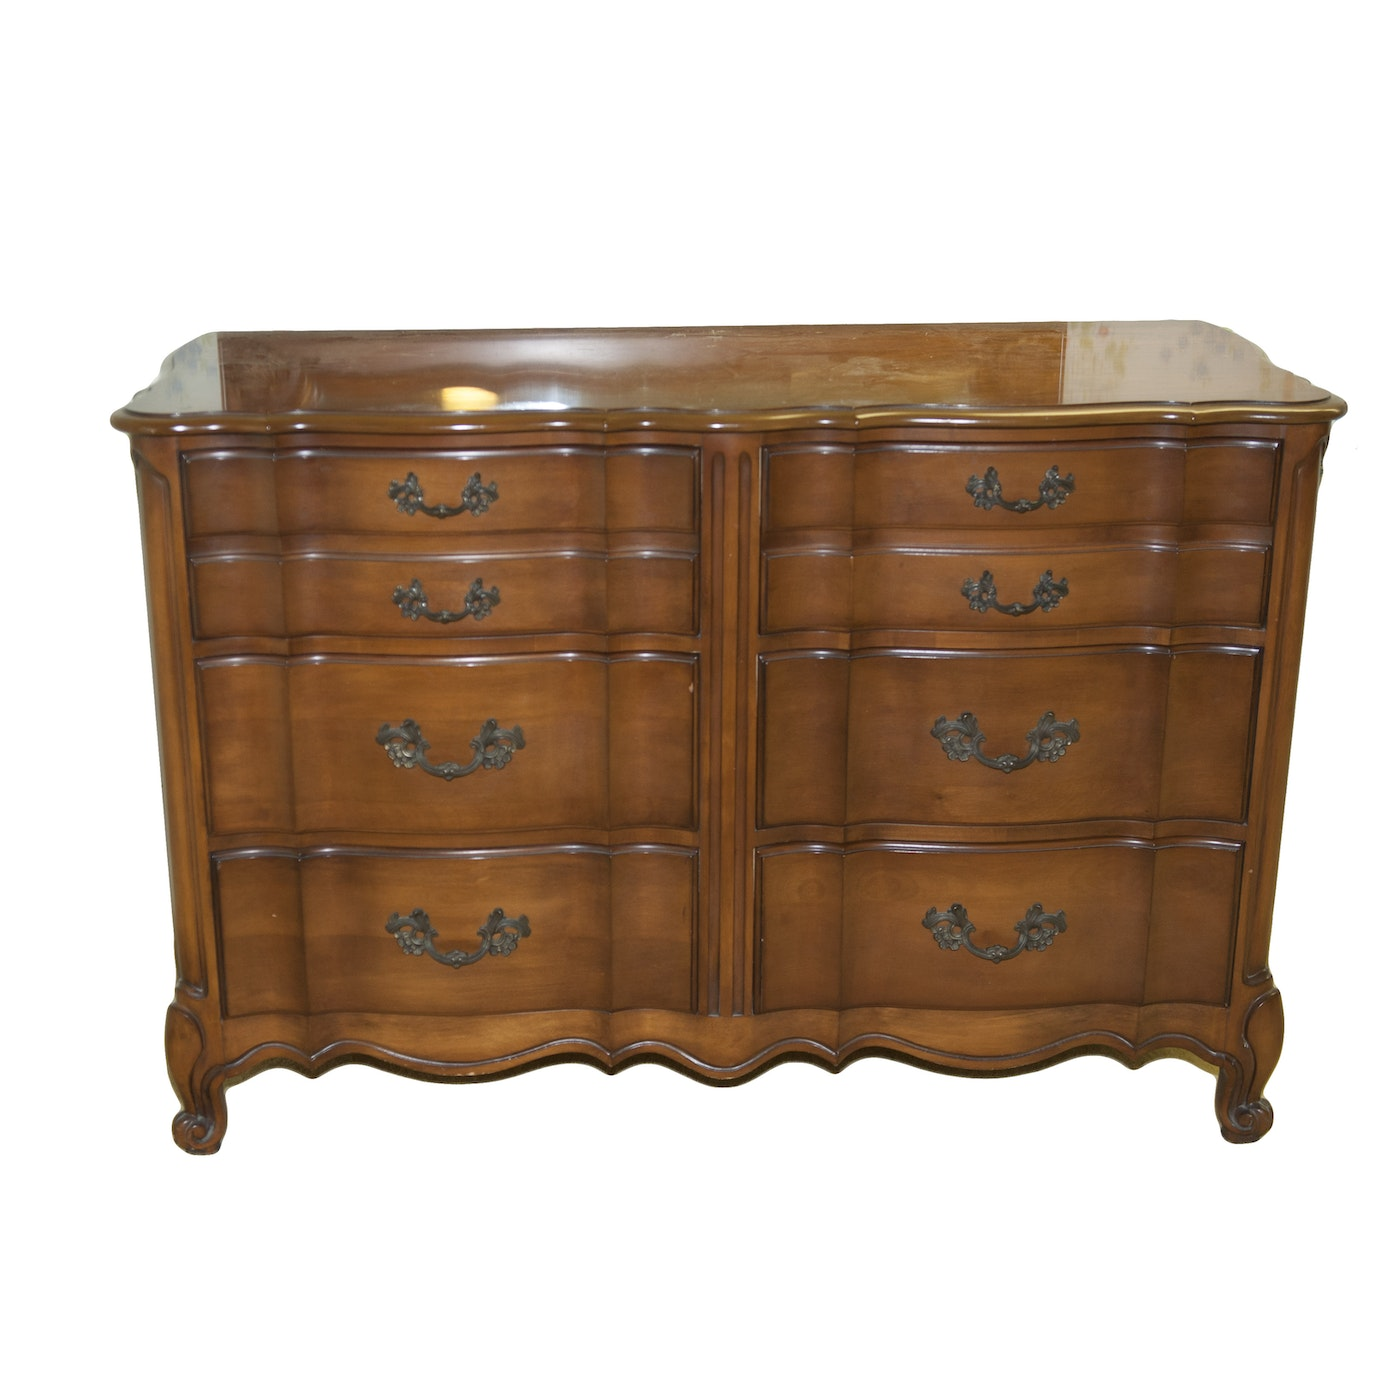 White furniture company french provincial style chest of for Furniture companies